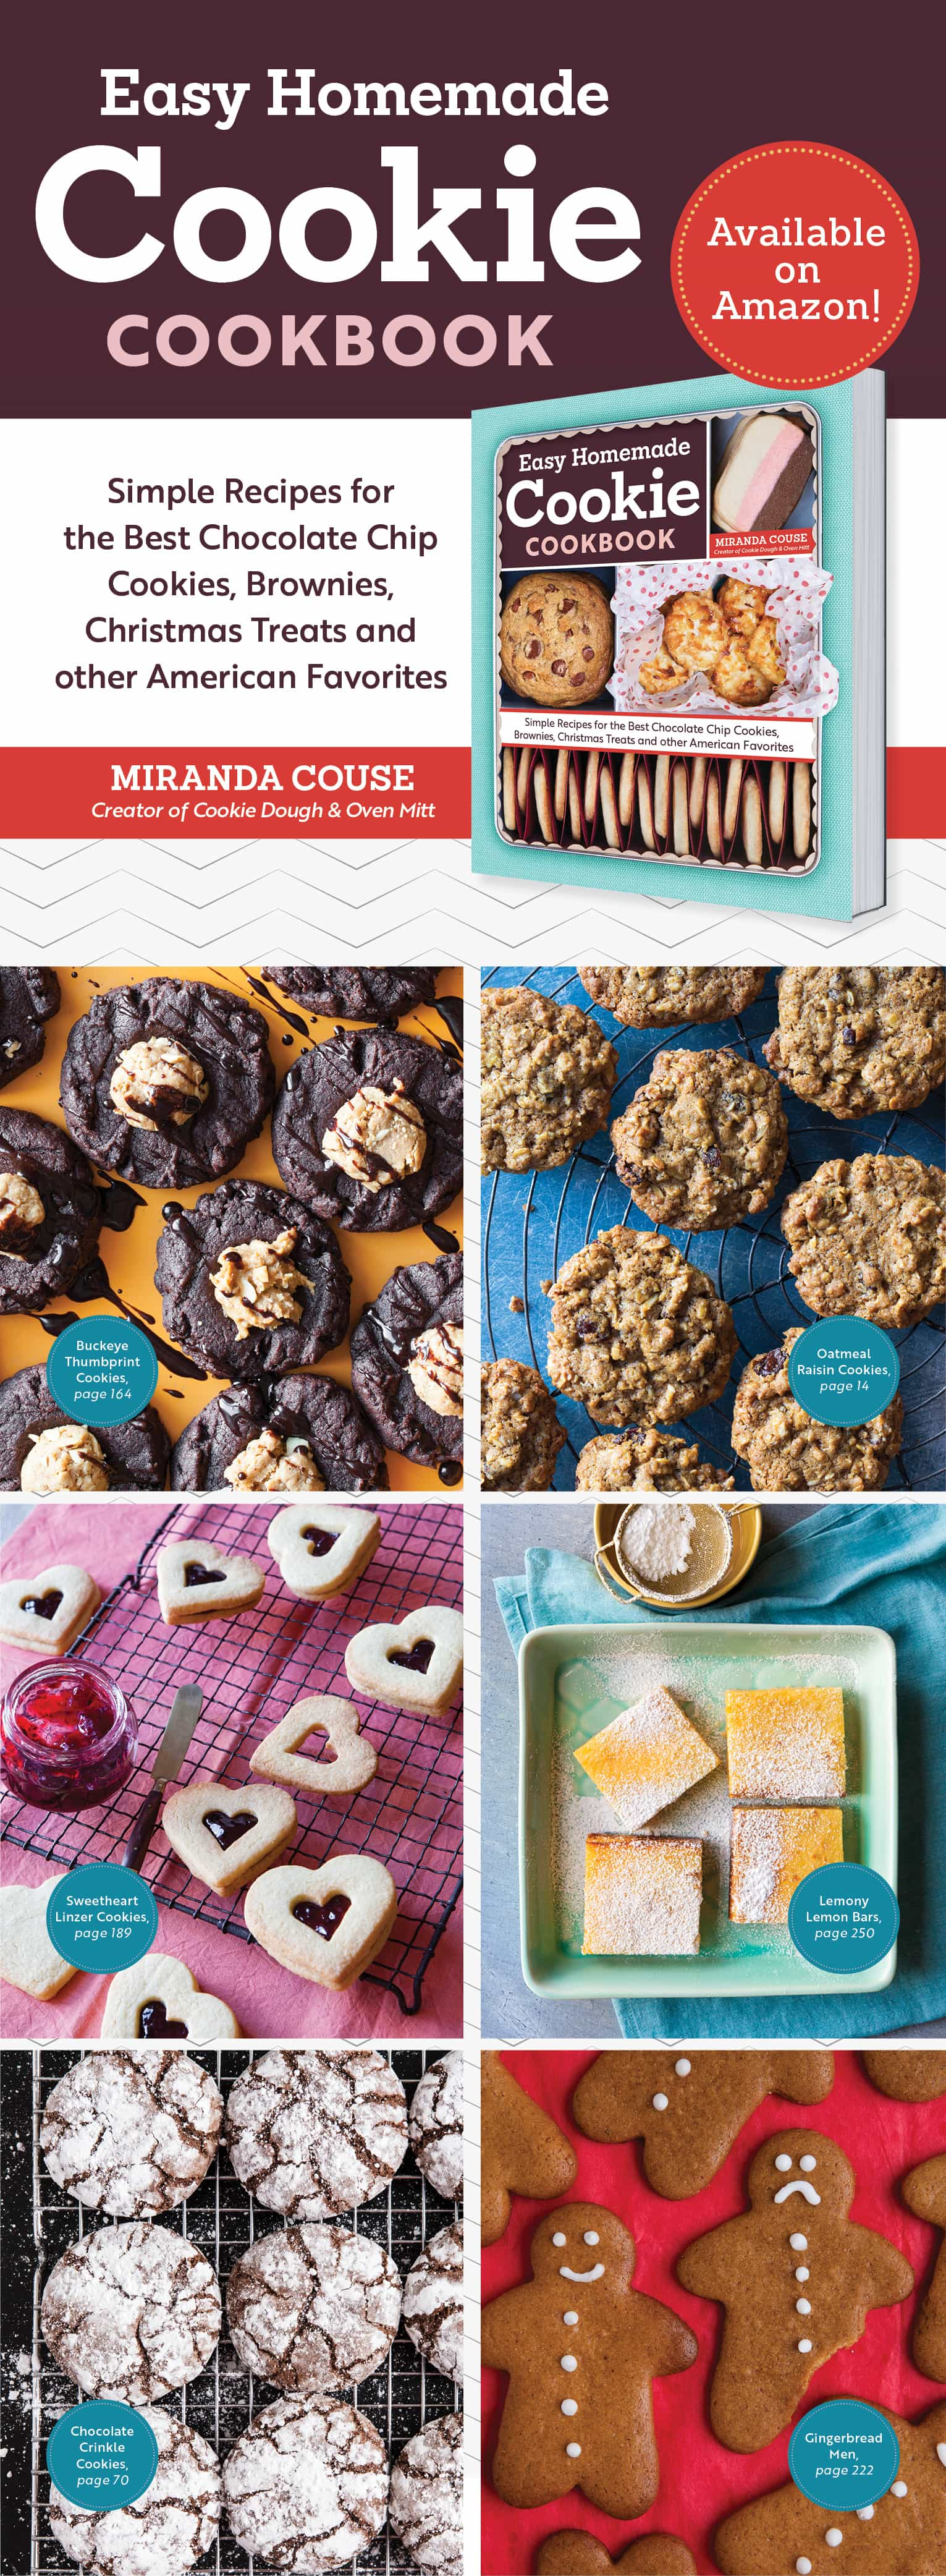 Miranda from Cookie Dough & Oven Mitt has a cookbook out! The Easy Homemade Cookie Cookbook can be ordered now! There are 160 recipes, techniques on decorating cookies, tips and tricks for each recipe, and they're all simple to make!